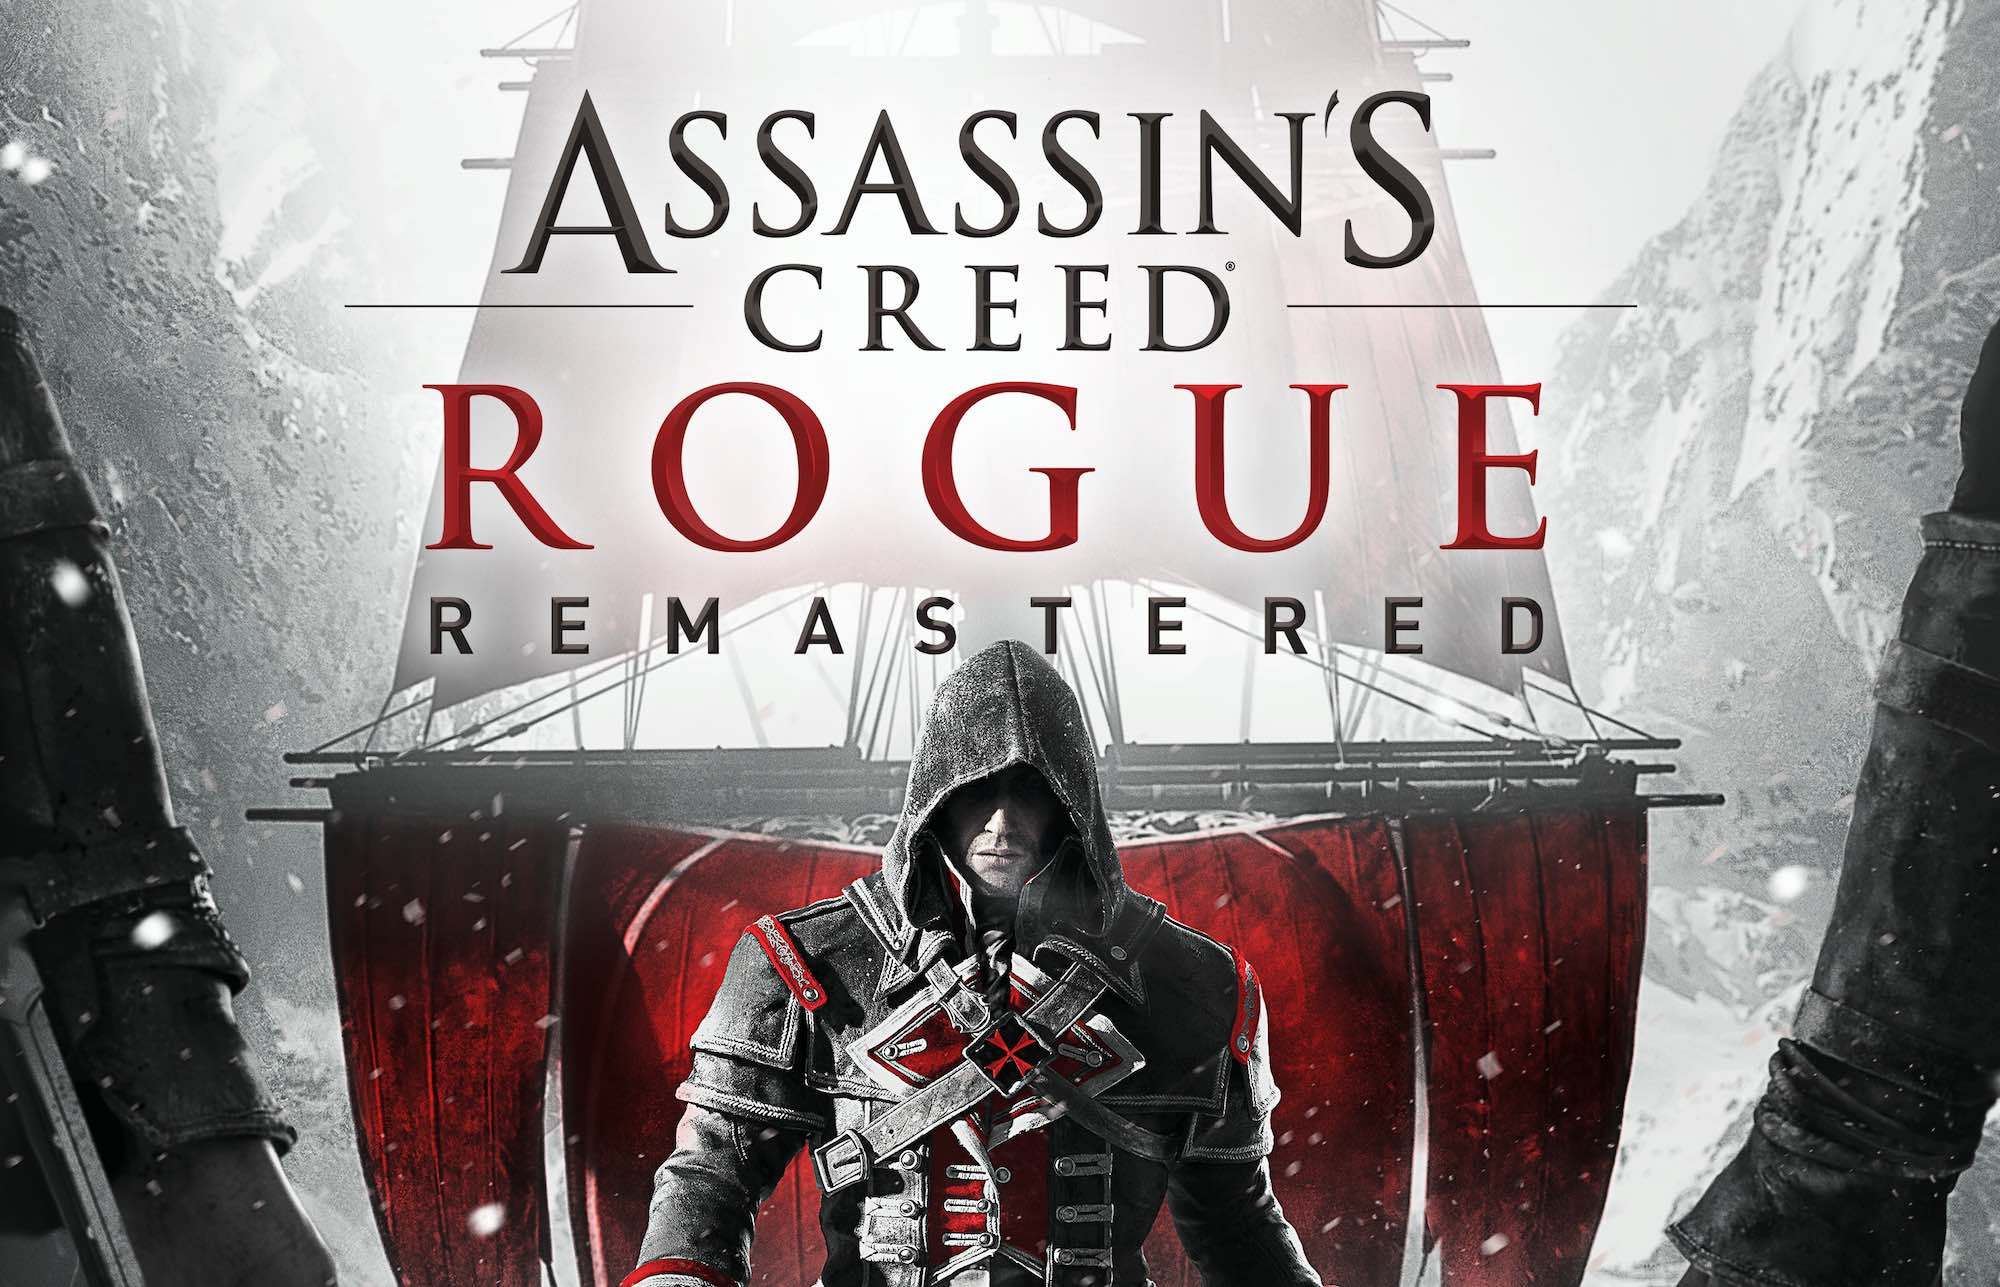 Assassins Creed - Rogue Remastered coming soon